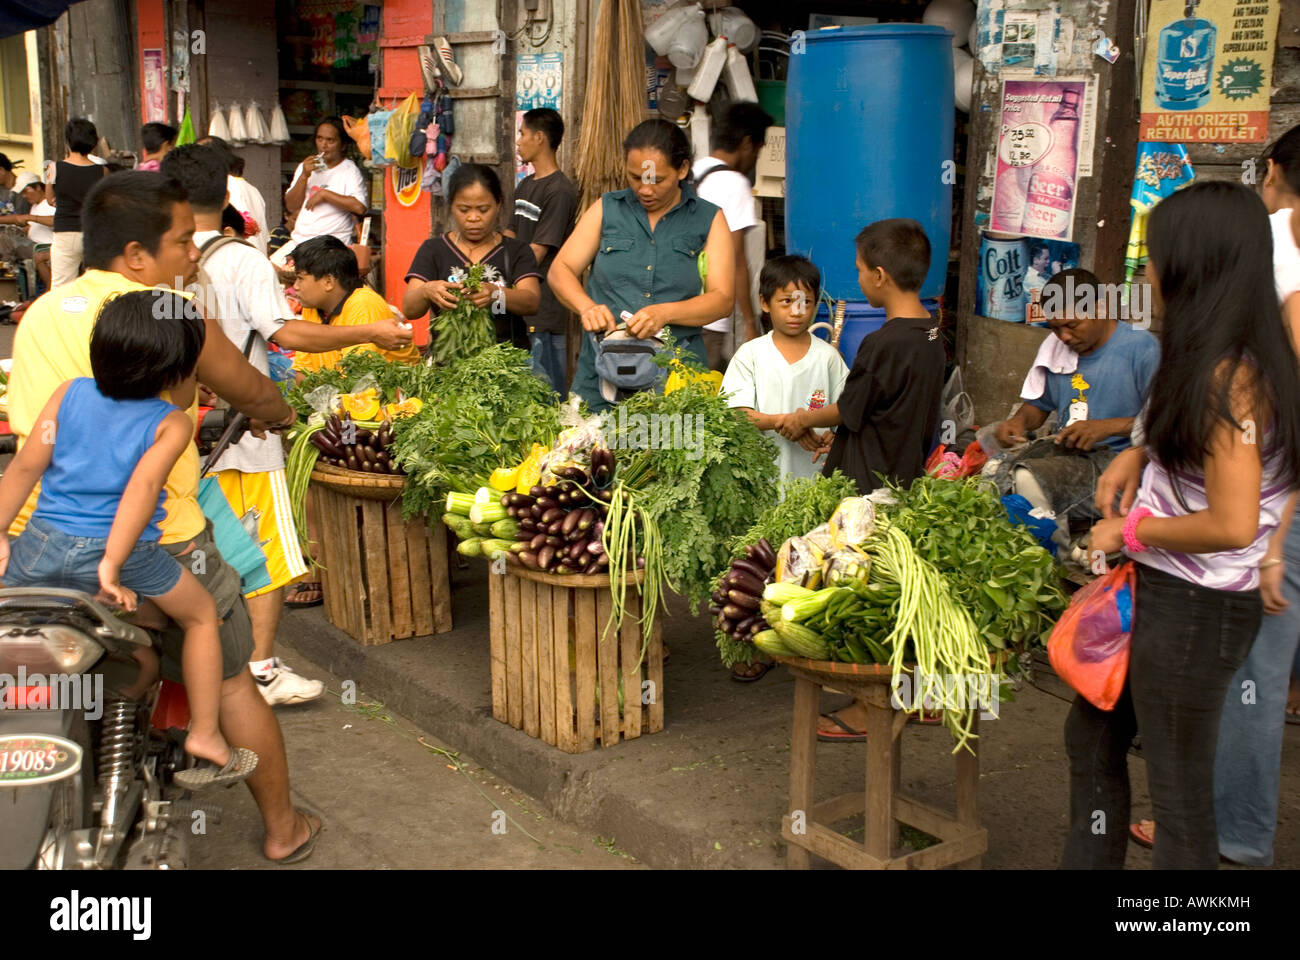 busy market scene essay Check out our top free essays on a busy market scene to help you write your own essay.